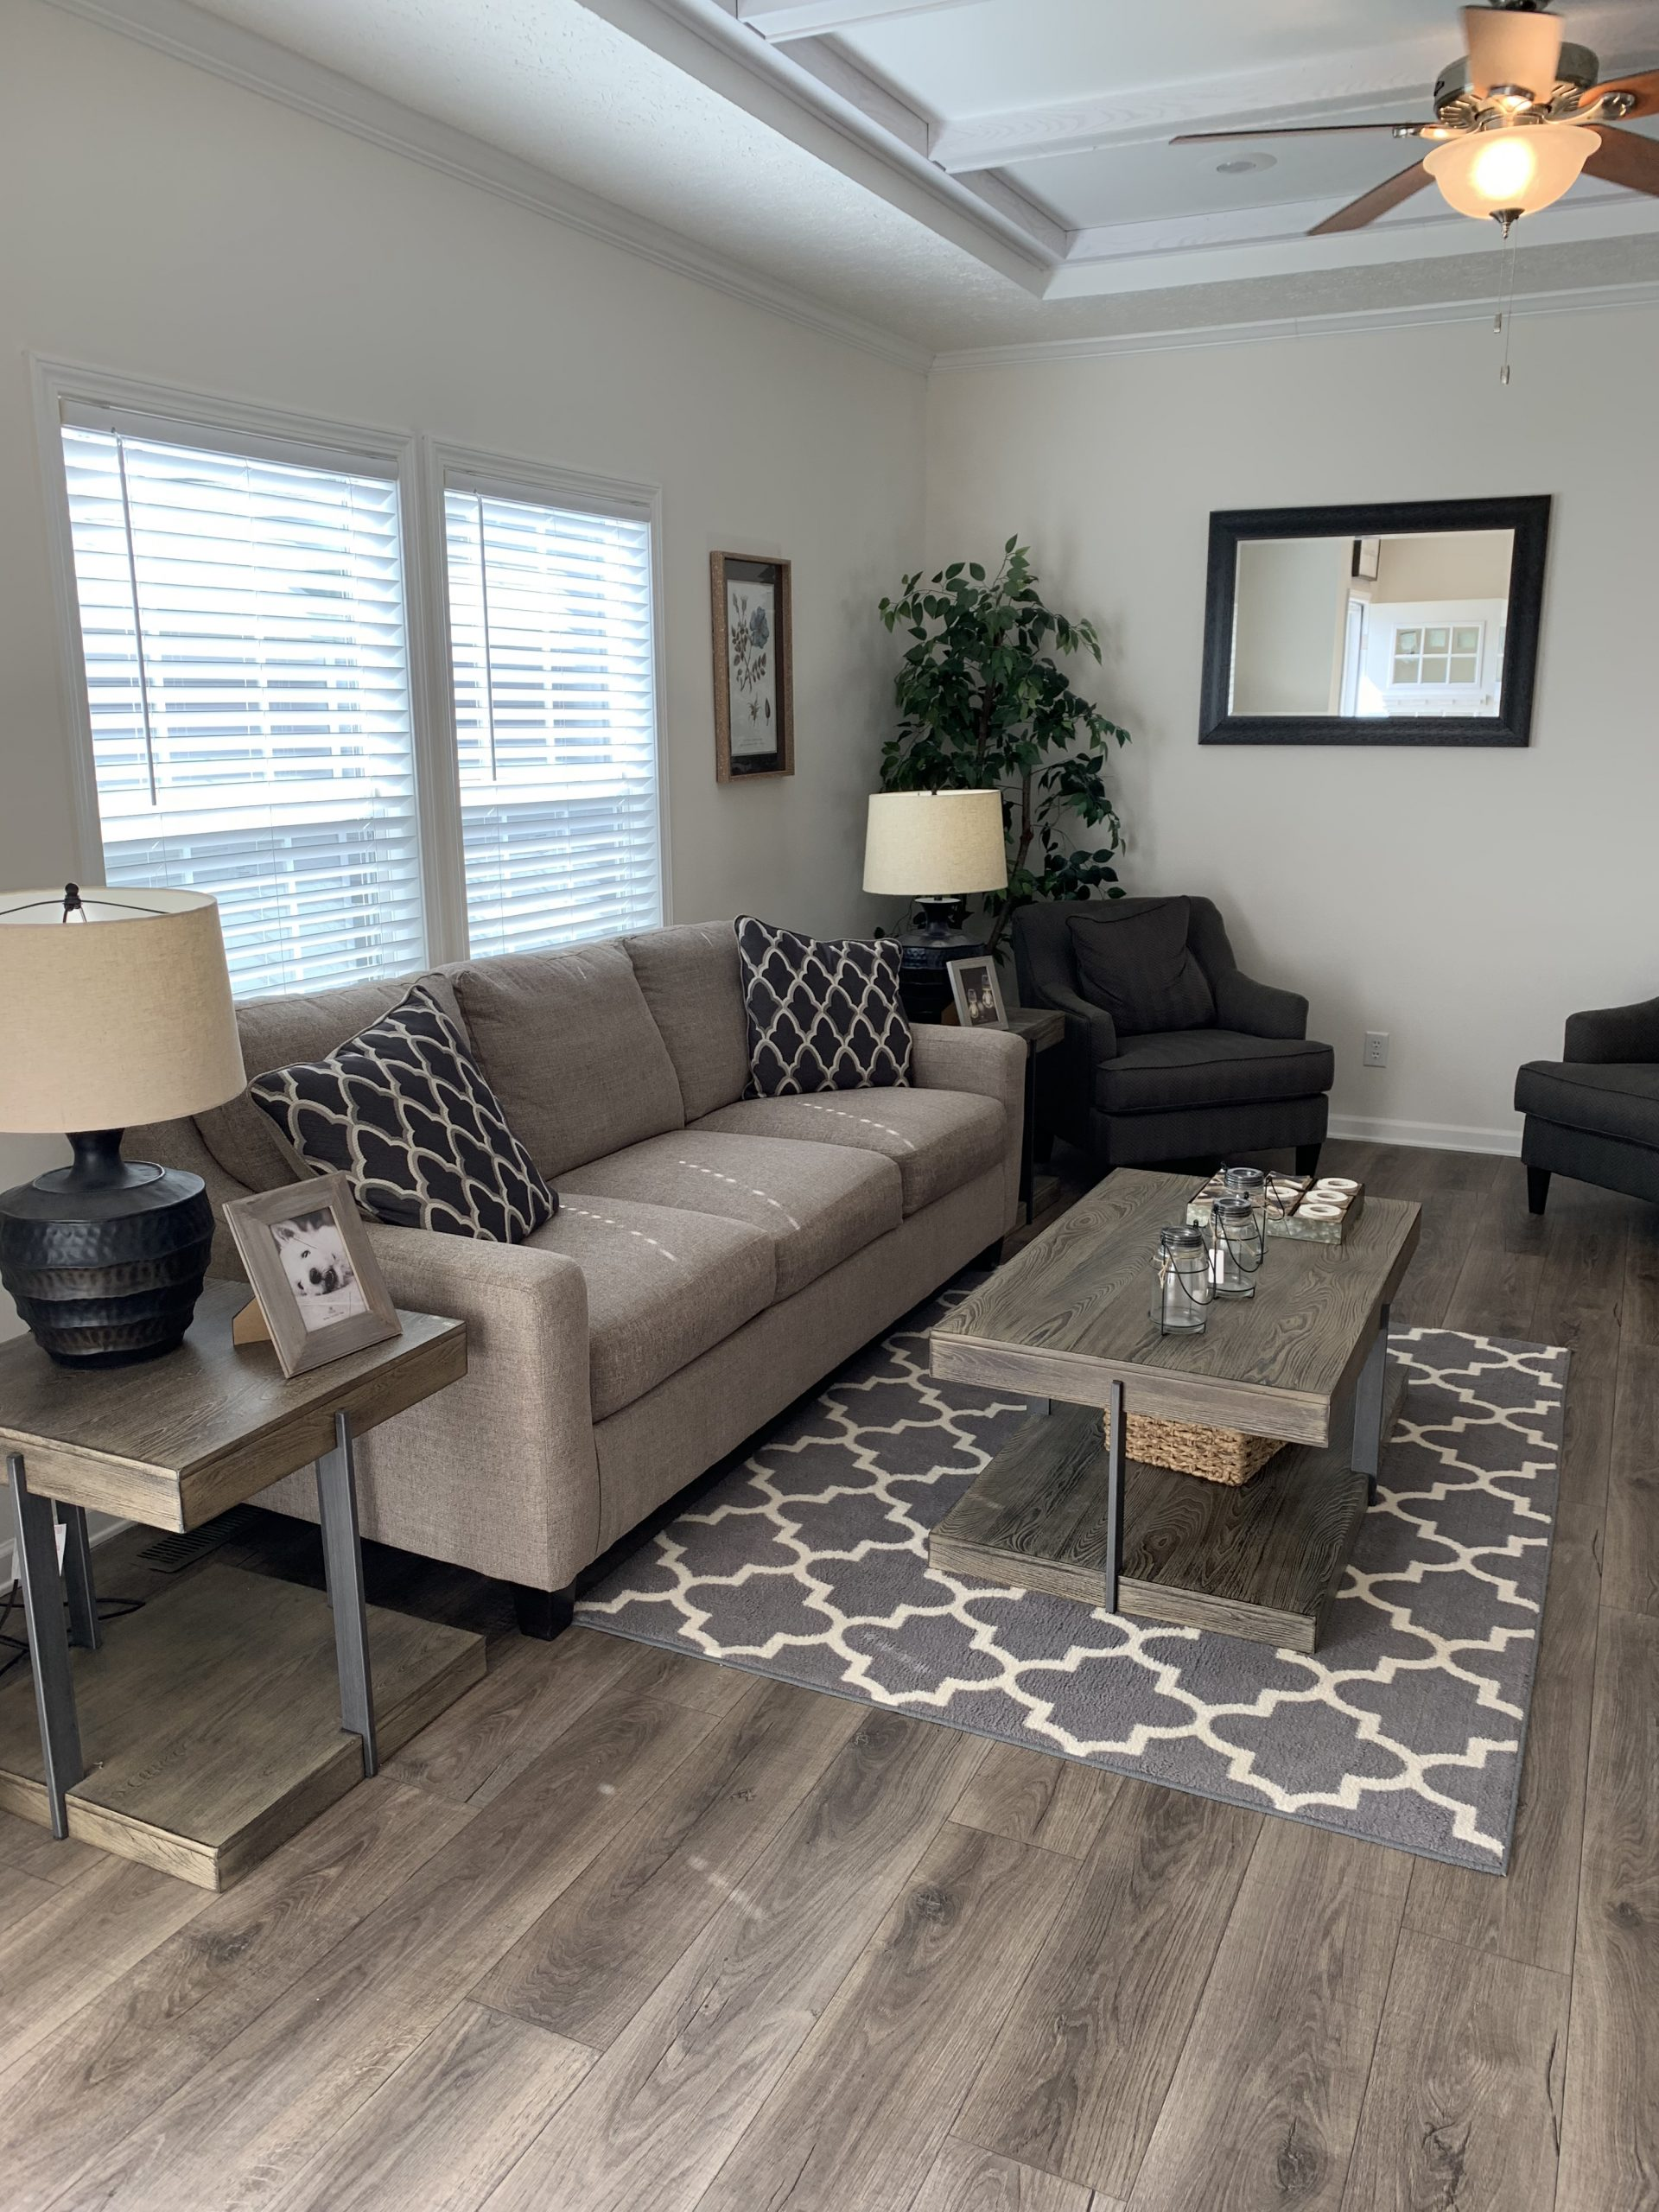 model home living room with beige sofa, farmhouse coffee table and side tables, gray and white area rug, large wall mirror, black lamps, LVP flooring.